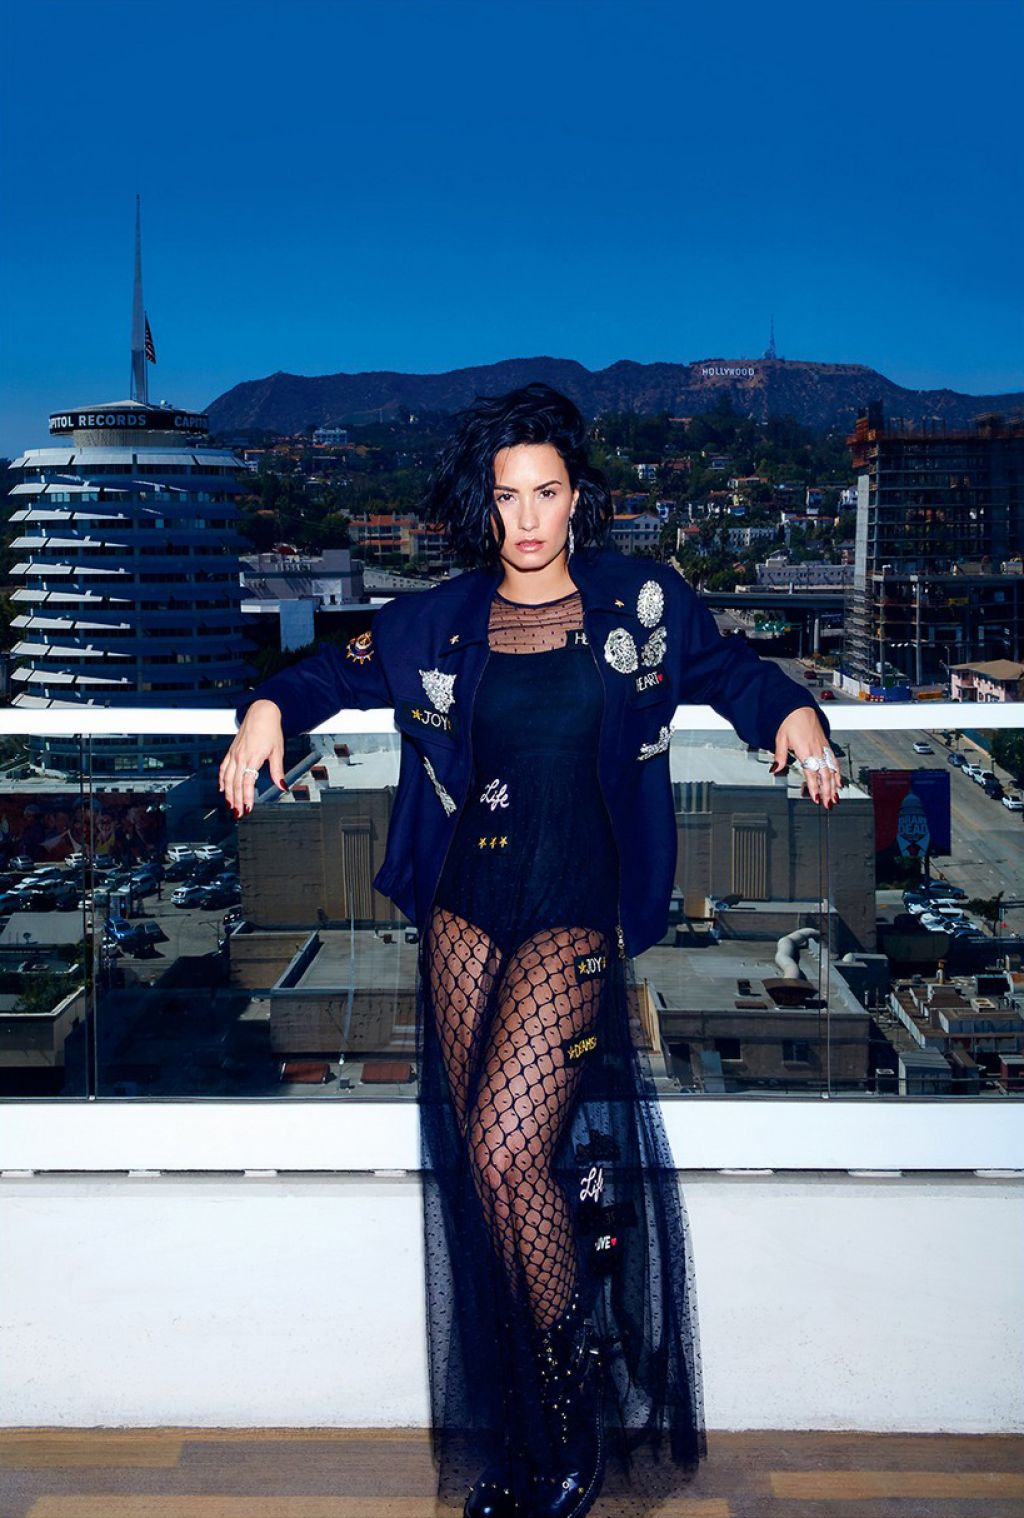 Demi Lovato - Photoshoot for Elle Canada September 2016 issue